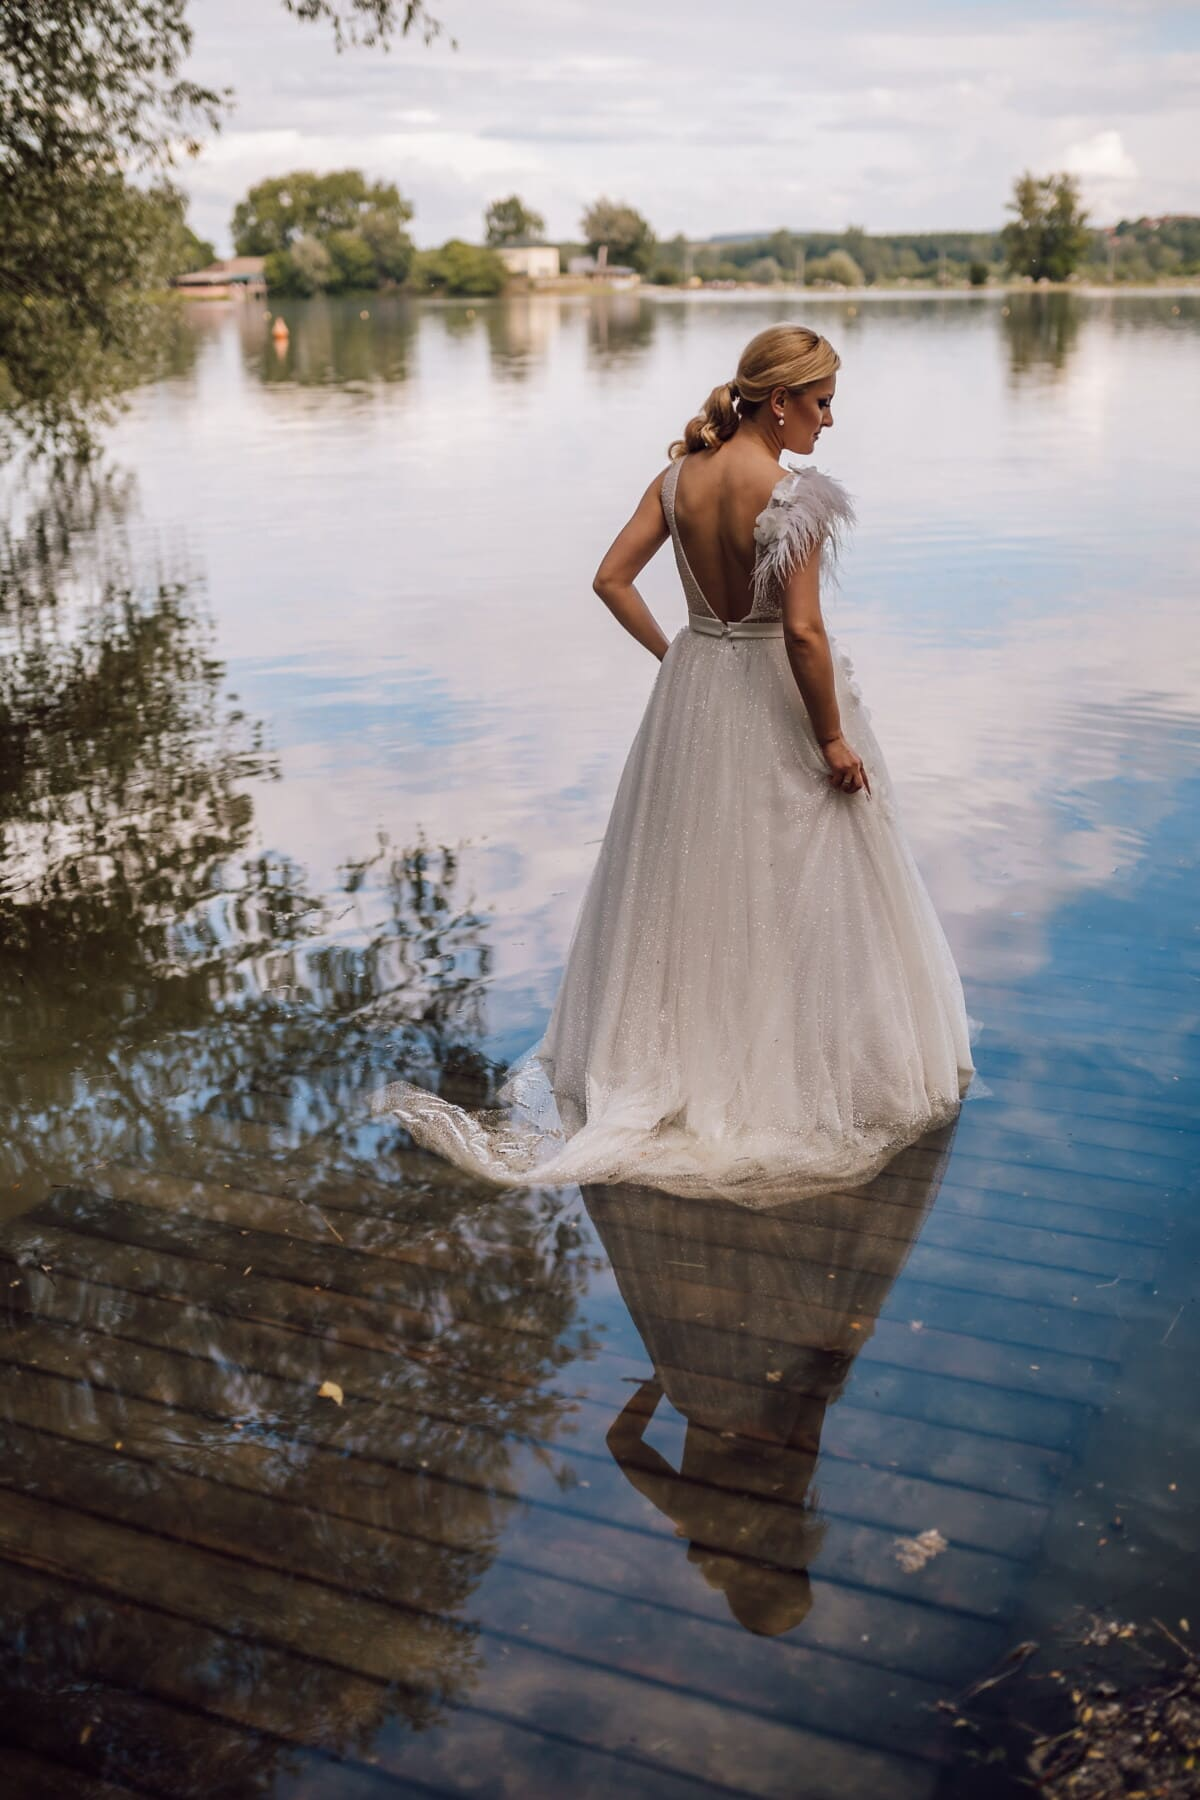 gorgeous, young woman, blonde, white, dress, lake, wedding, bride, water, outdoors